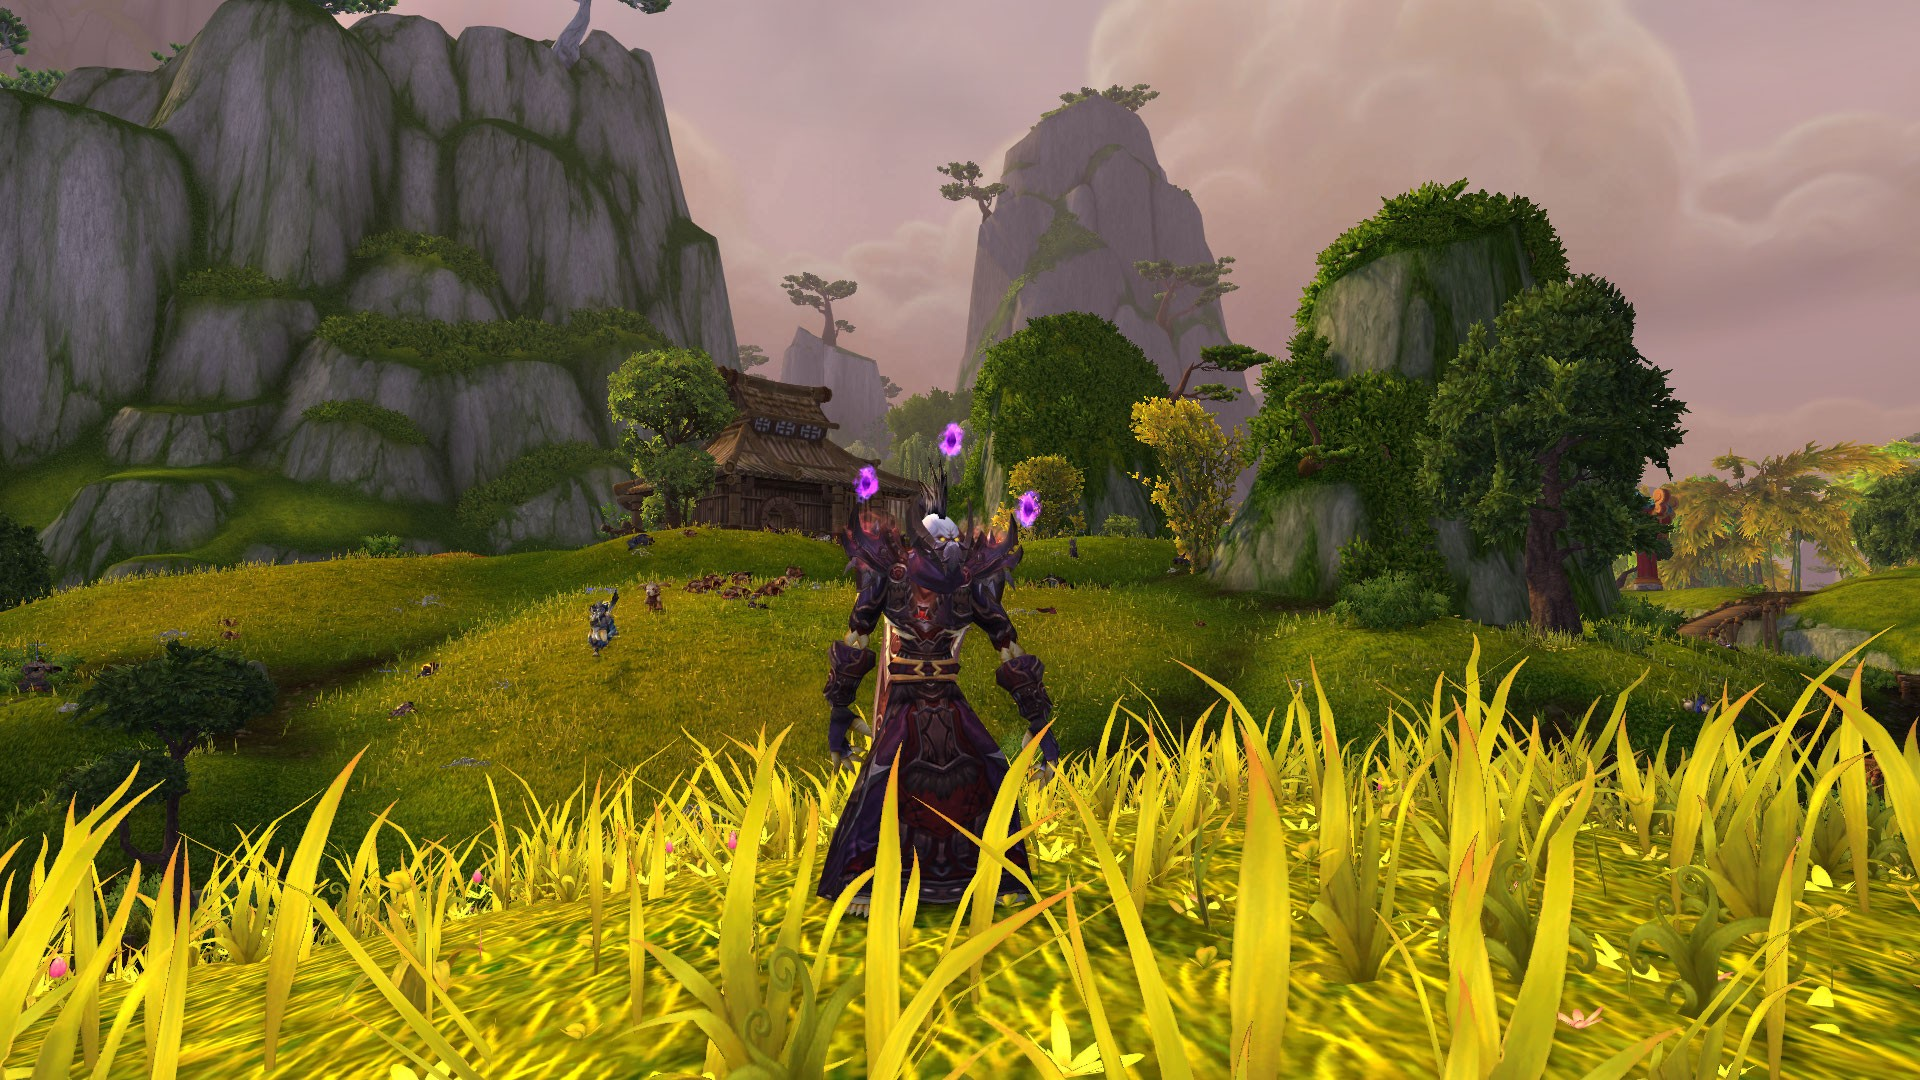 World of Warcraft: Mists of Pandaria - I think that the trees look much better